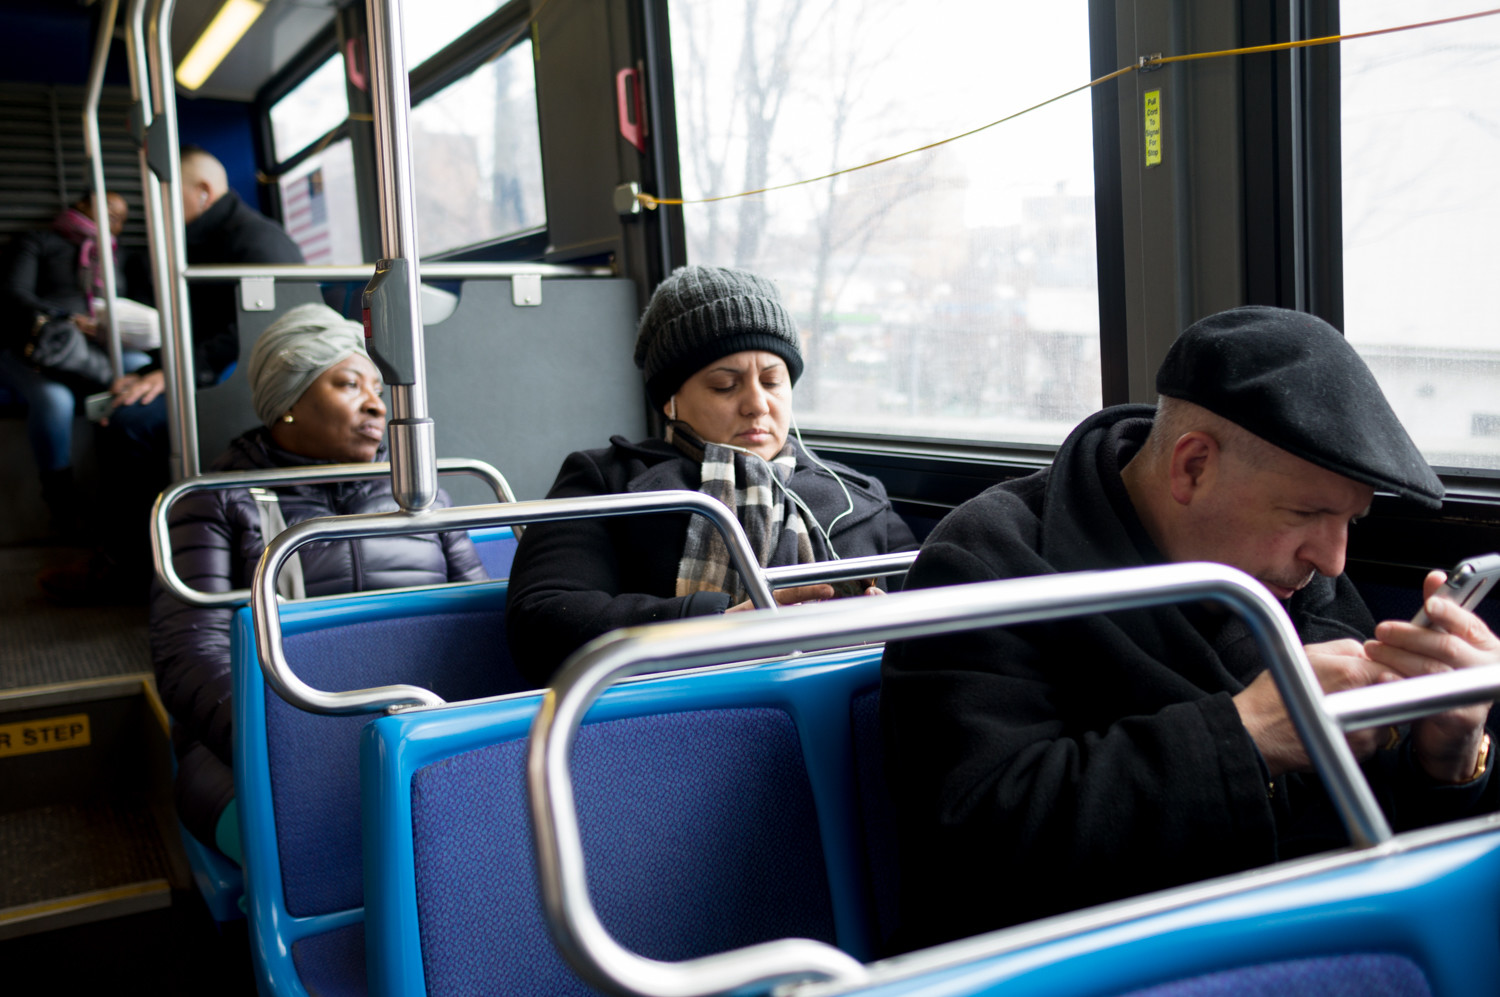 Elizabeth Bermudez, far left, finds a way to make mass transit fares work, but more than 300,000 working poor New Yorkers struggle to make those costs each day. A program offering half-priced fares could help an estimated 800,000 people living at or below federal poverty guidelines.